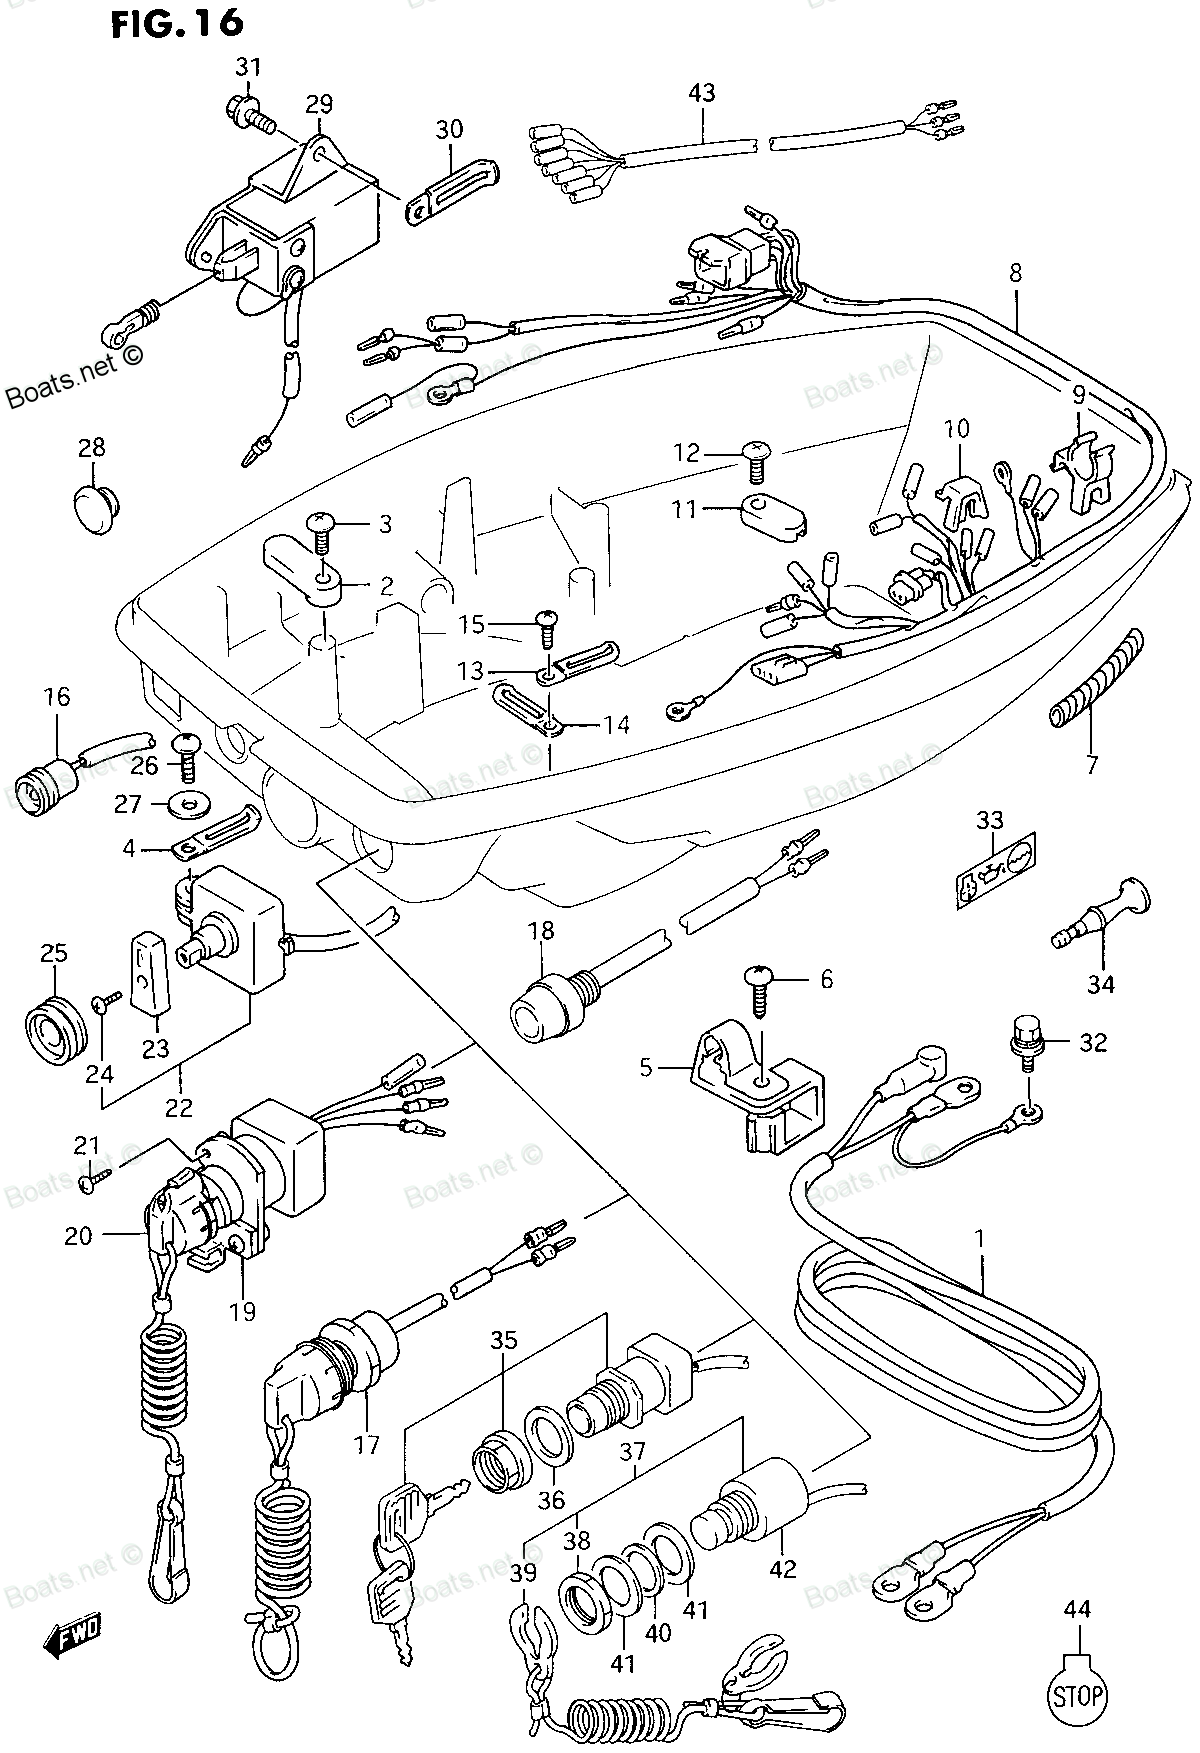 manual for suzuki 30hp outboard ebook John Deere Drive Belt Diagram array dt25c suzuki wiring schematic wiring library rh 8 mac happen de